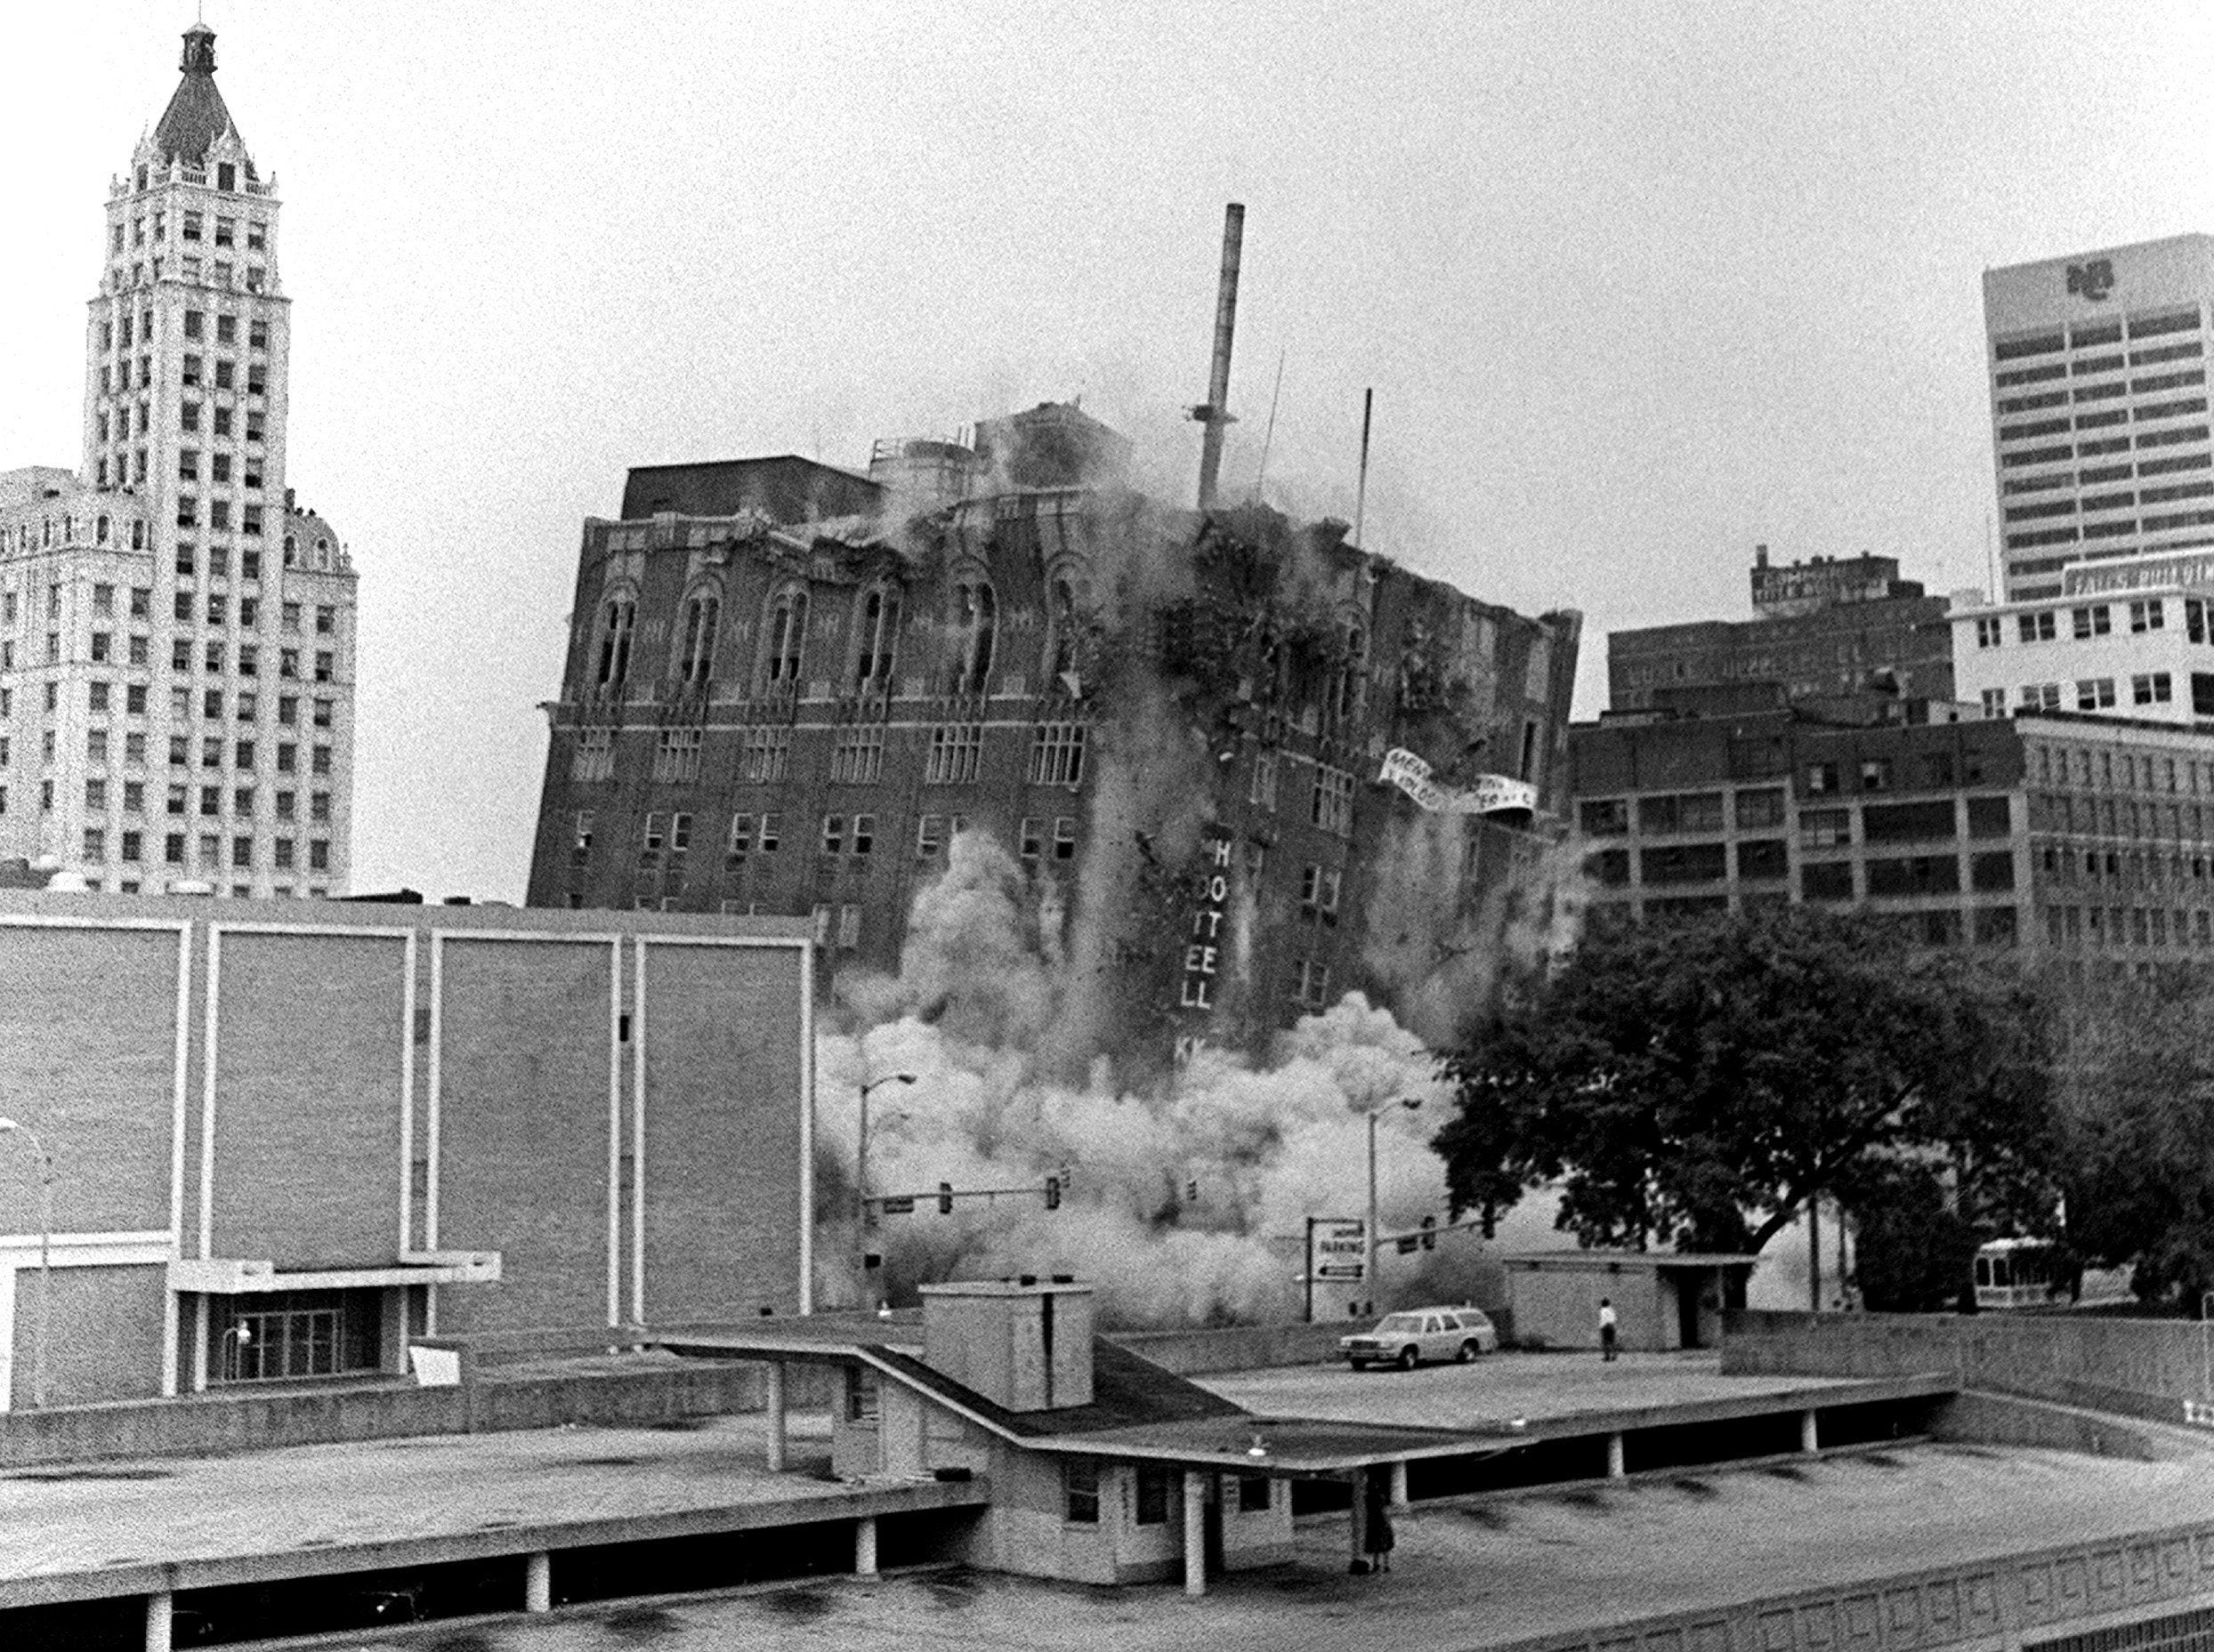 The Hotel King Cotton crumbles after demolition charges are set off on 29 Apr 1984. The Lincoln American Tower is at left and One Commerce Square is at far right. Morgan Keegan Tower stands on the site today.